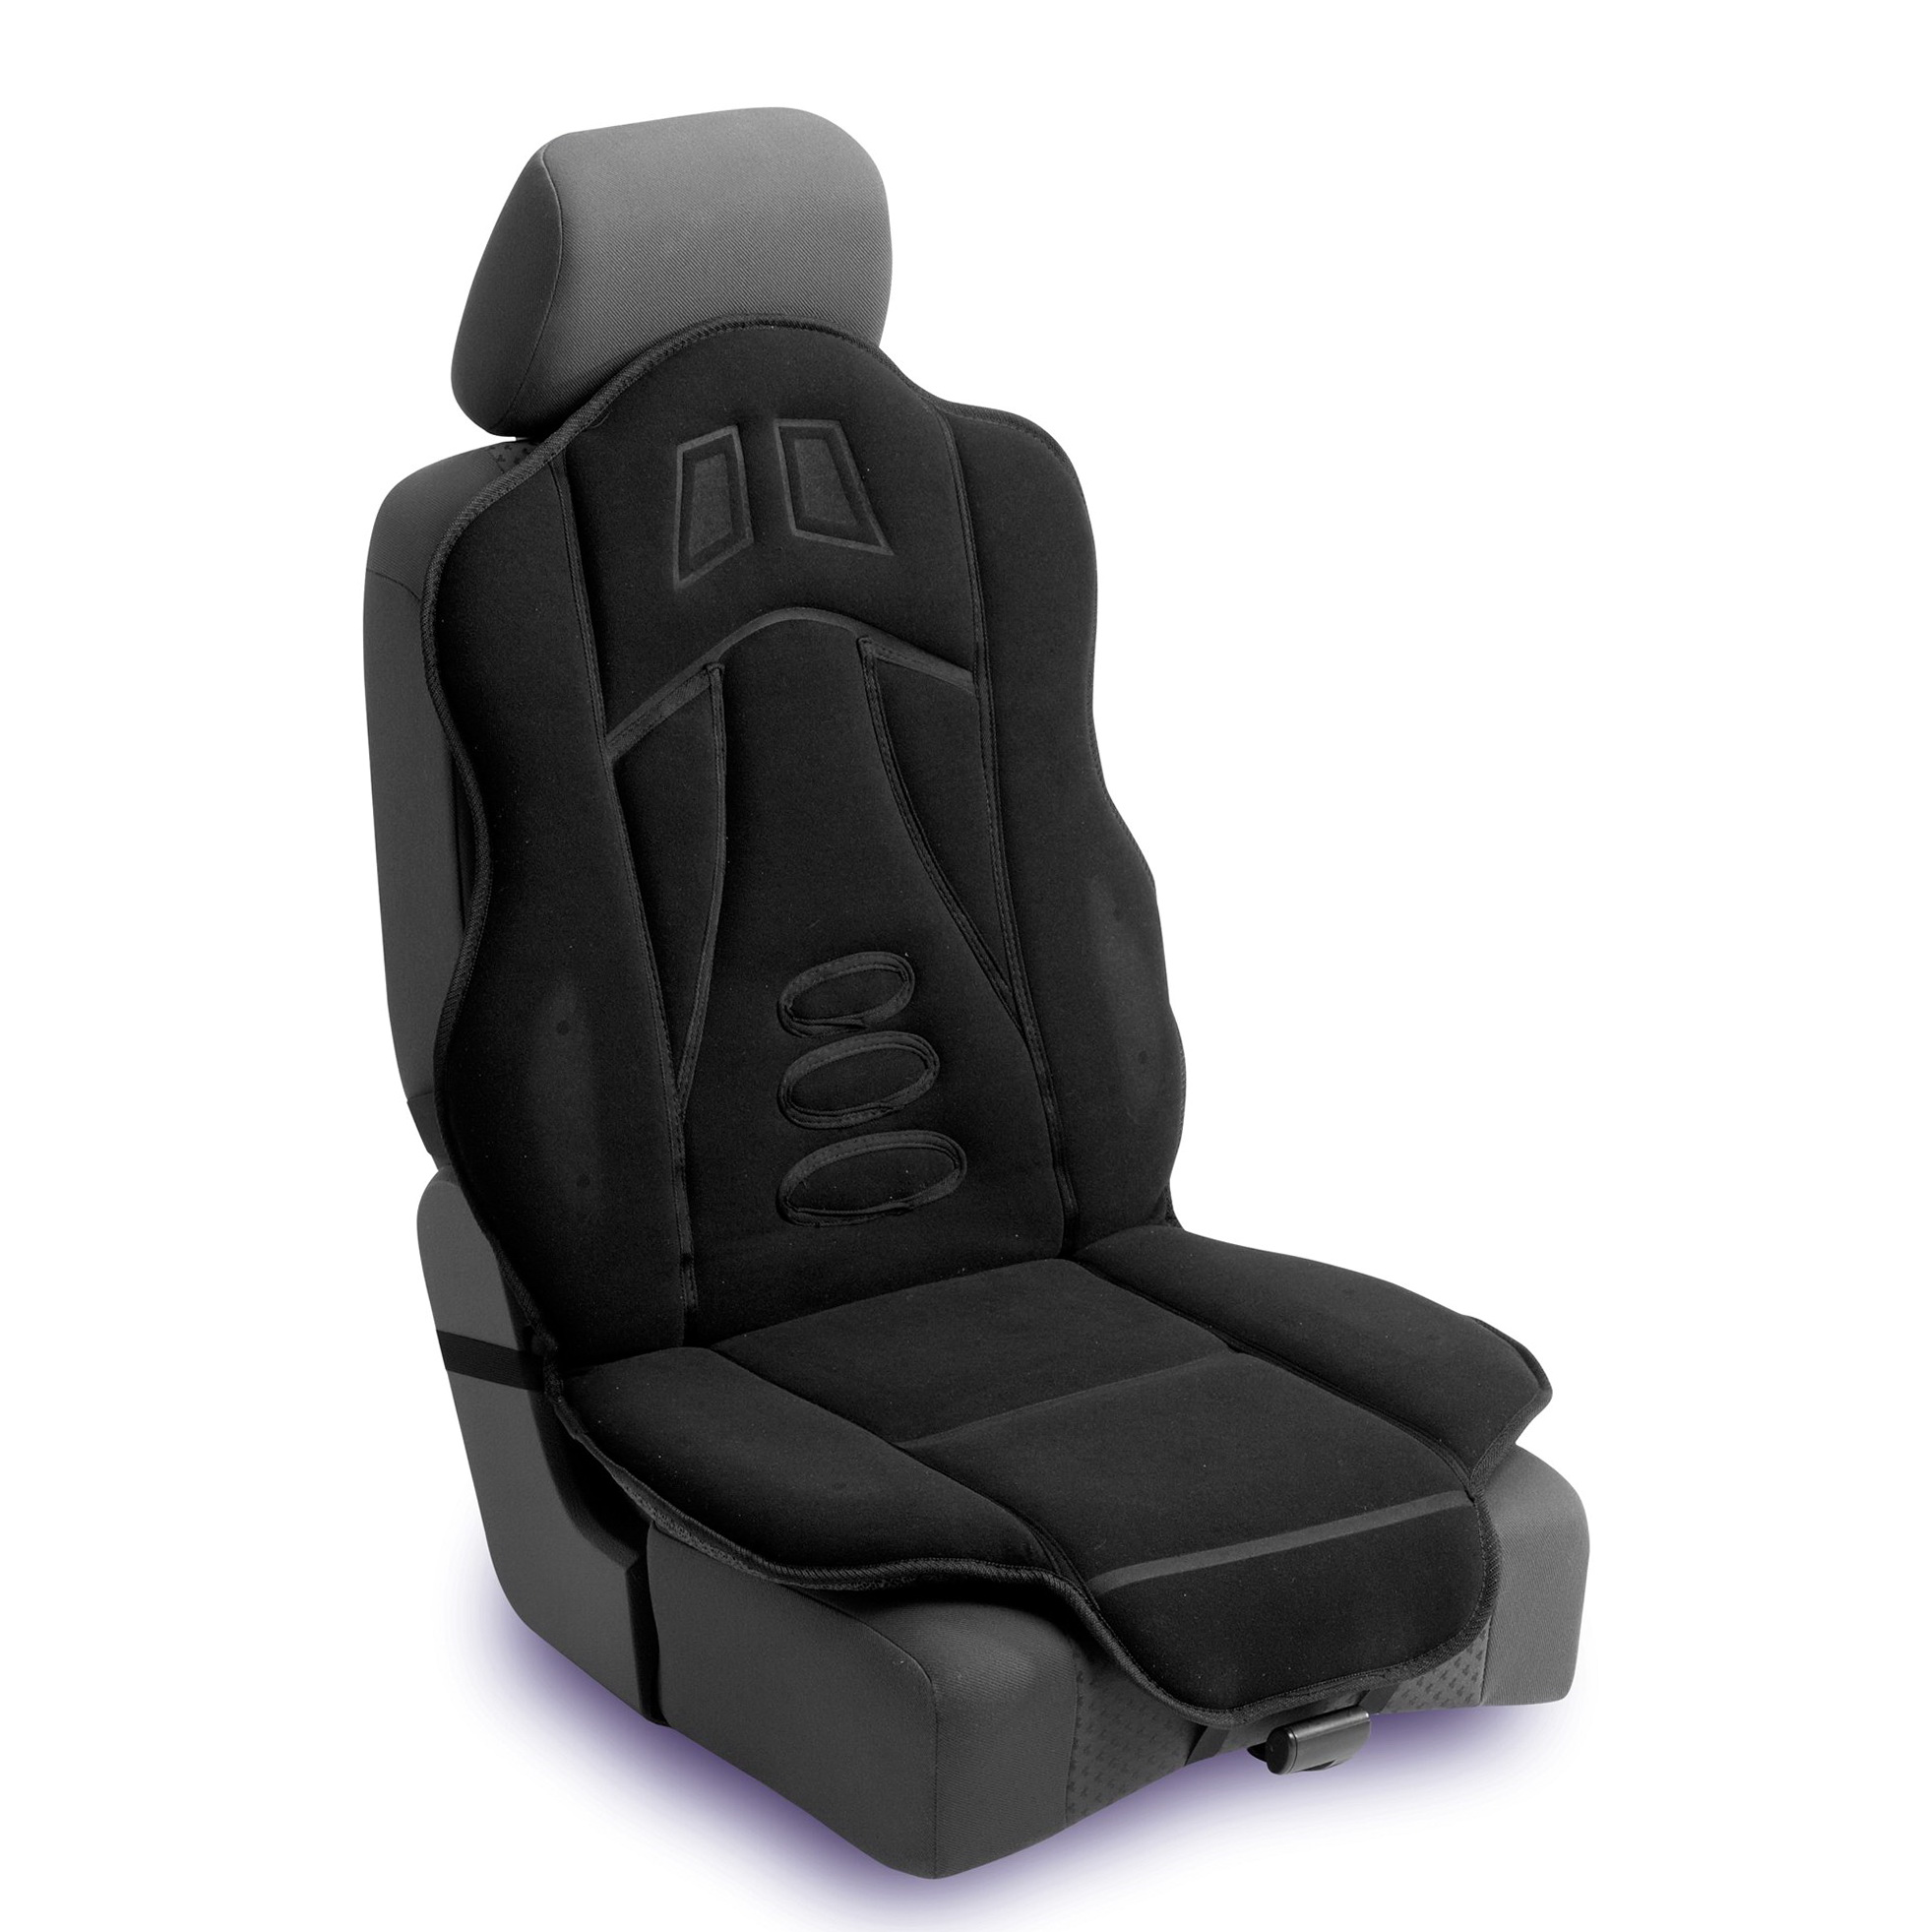 Car Seat Back Cushion Home Design Ideas